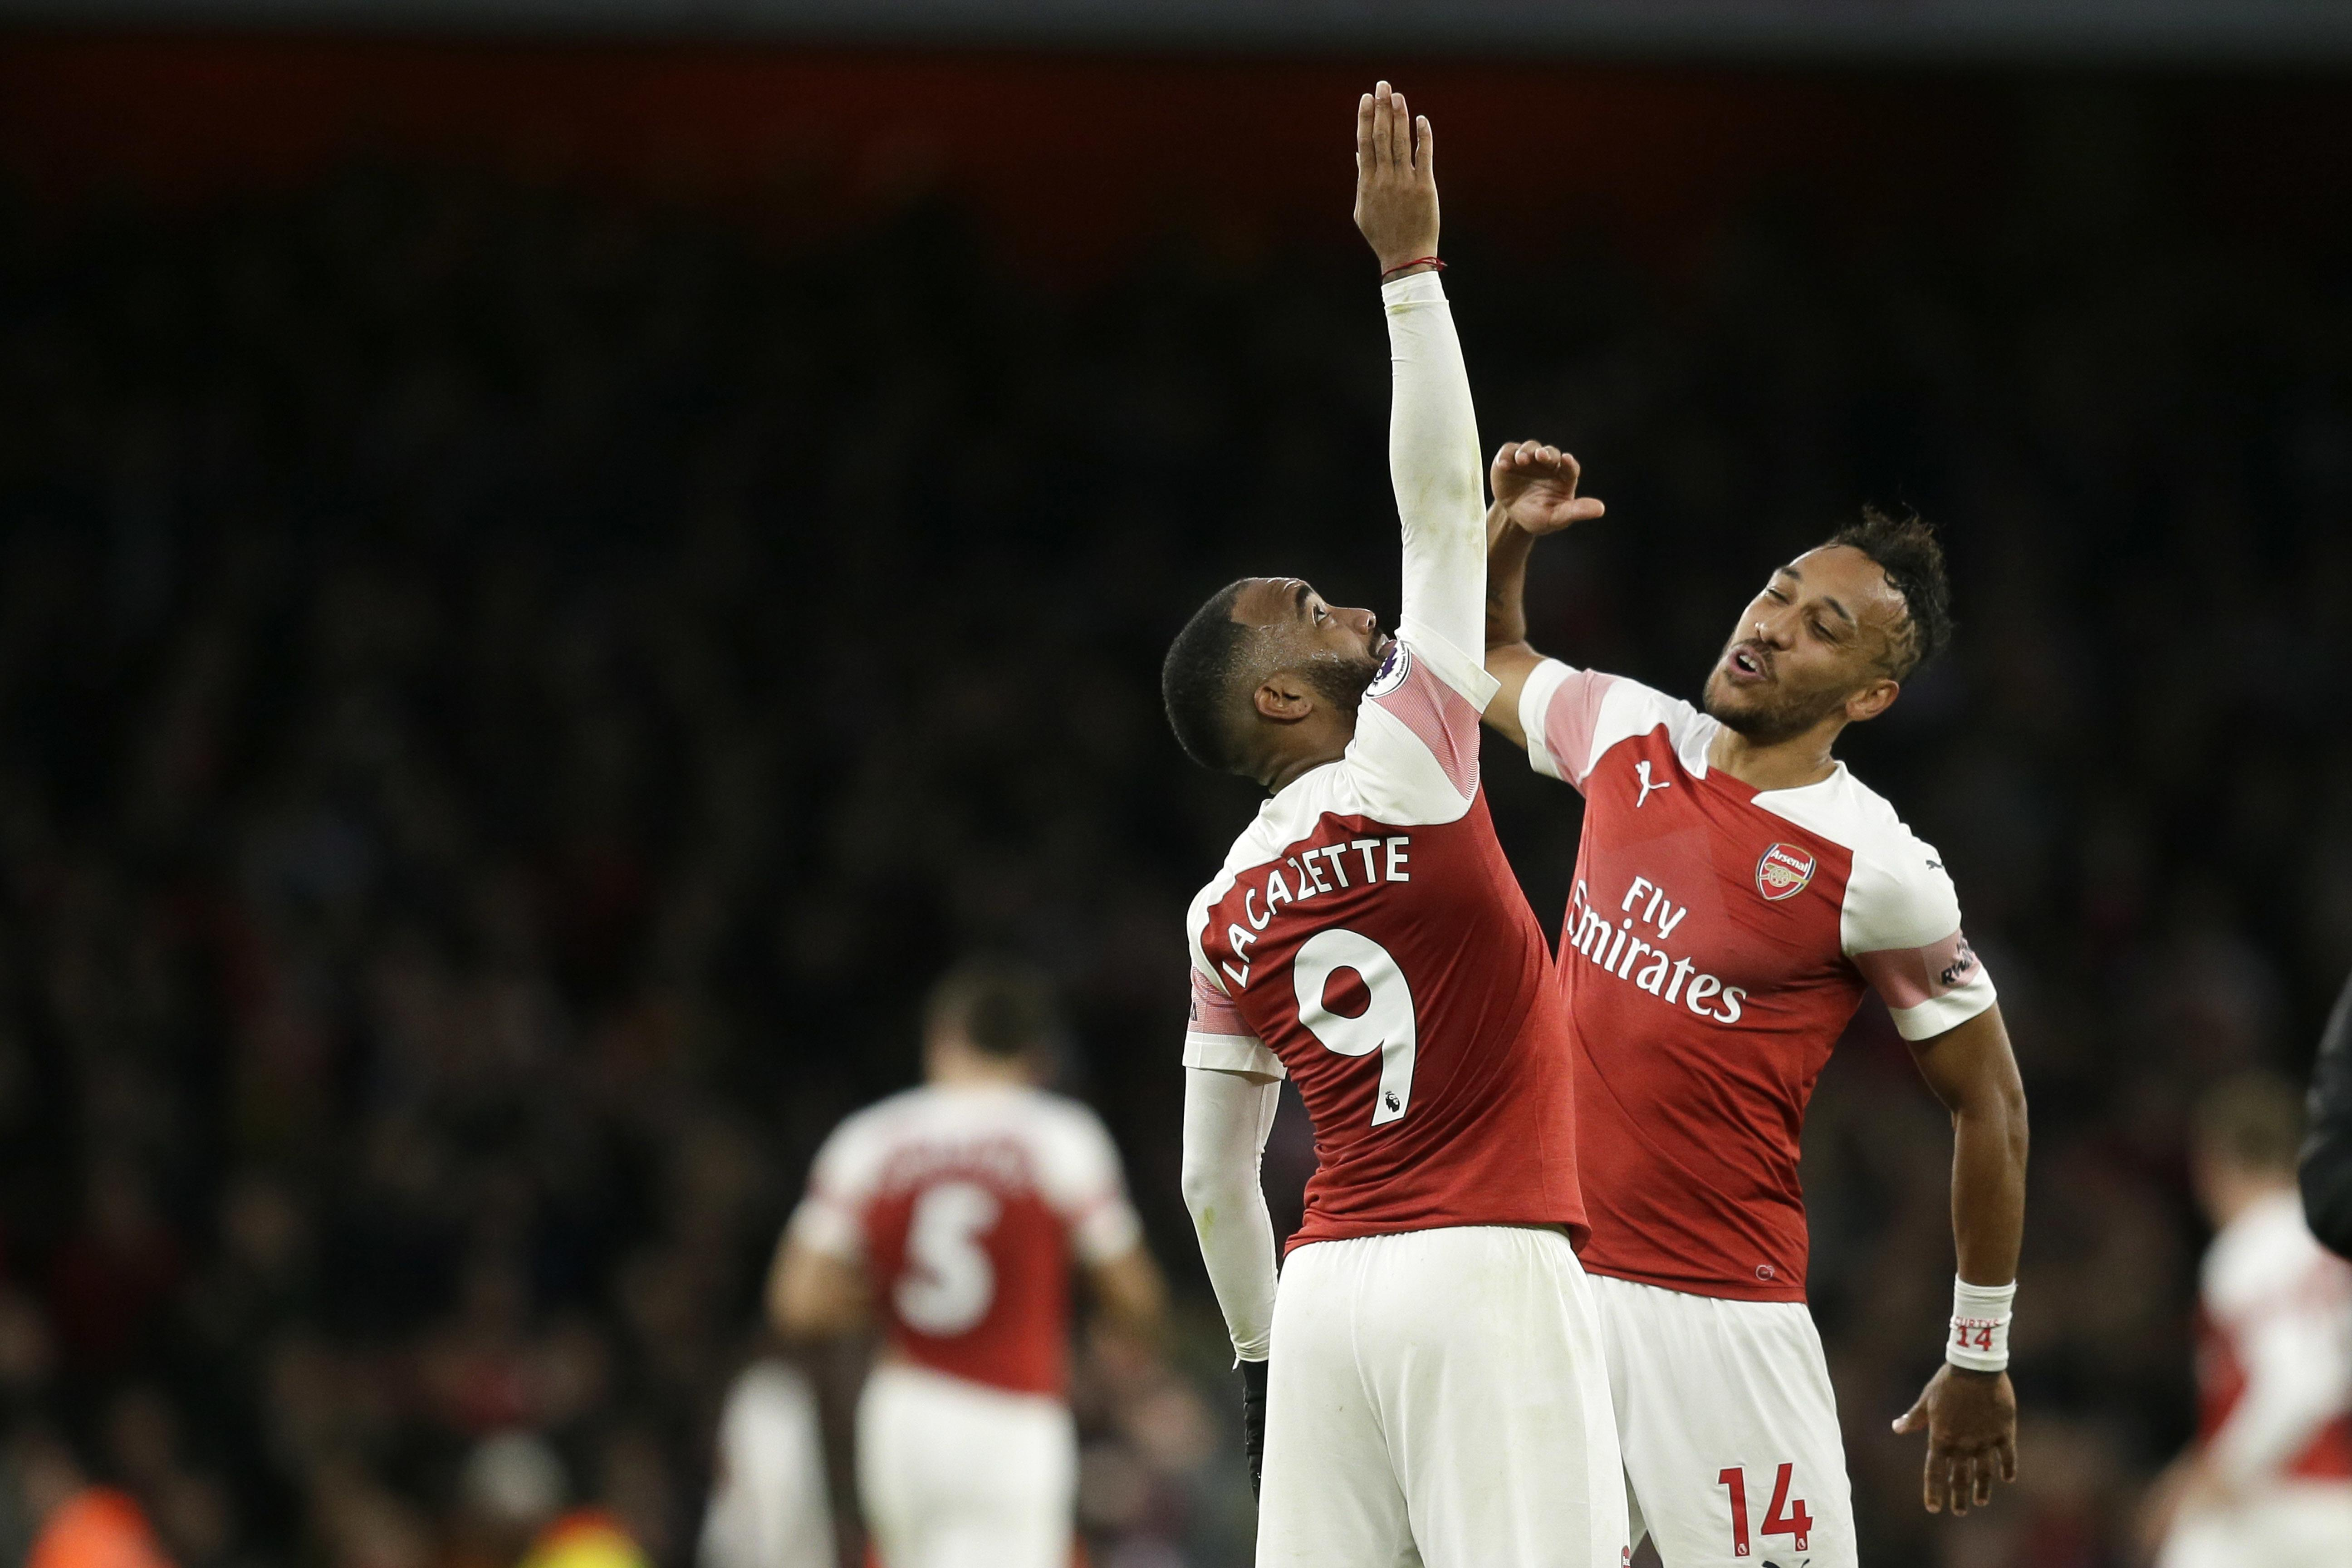 Lacazette and Aubameyang have been in fine form for the Gunners this season